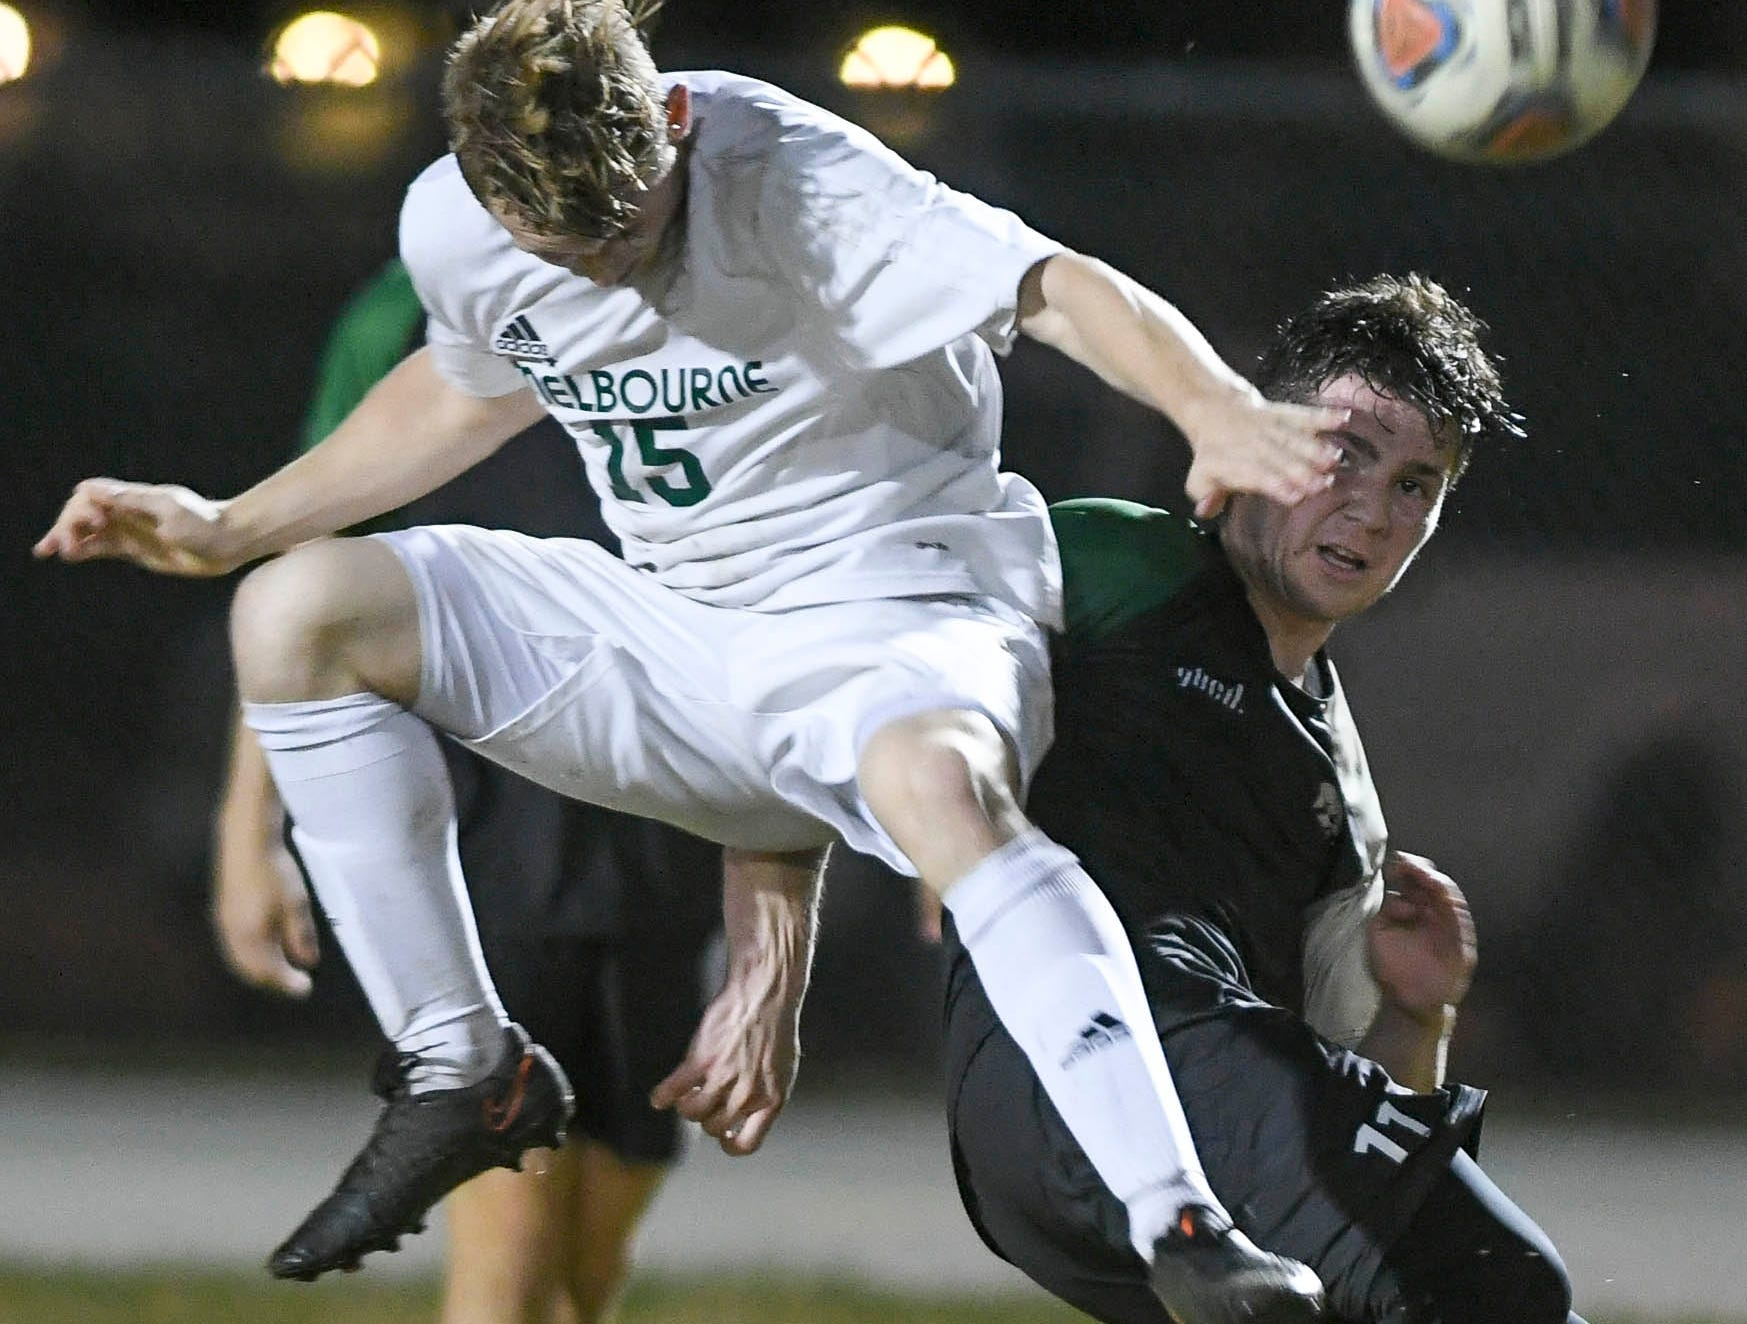 Melbourne's Logan Kraus contends for the ball with Viera's Christian Becerra during Friday's game at Viera High.